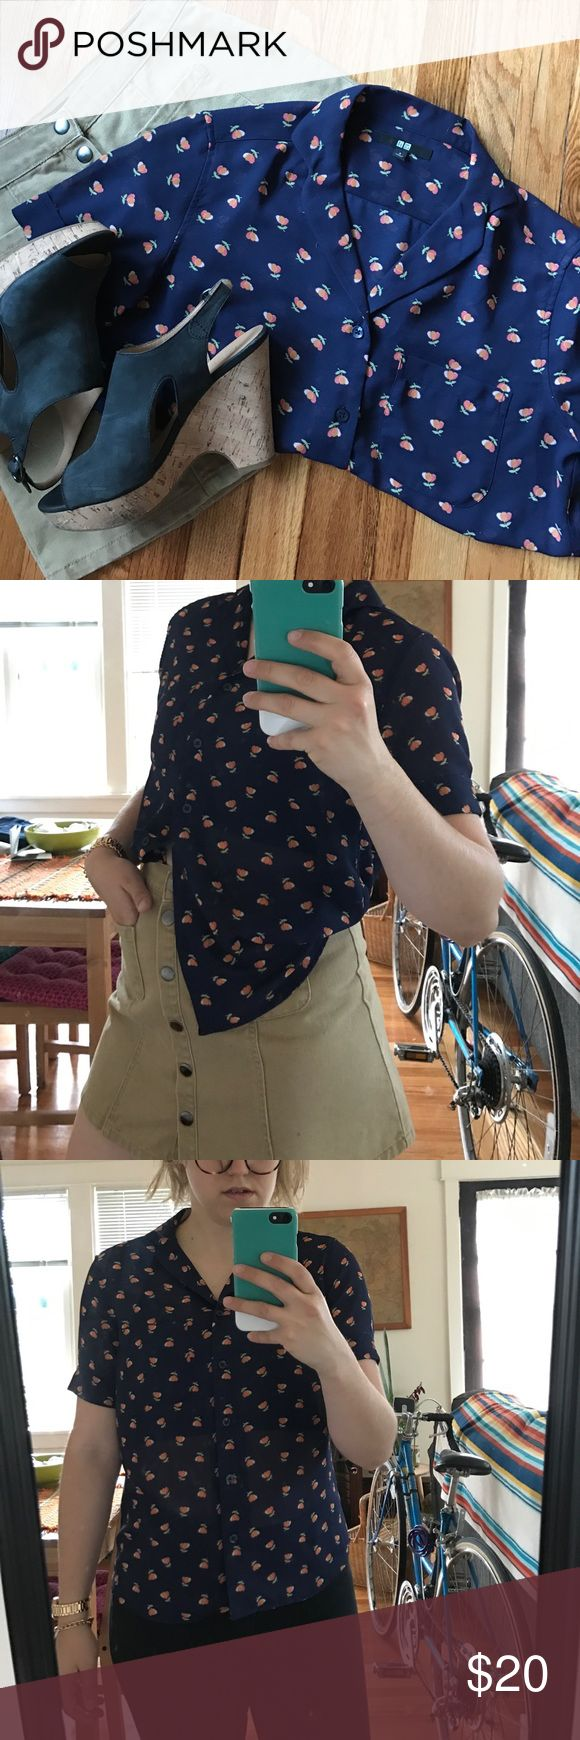 NWOT Button down short sleeve top Semi sheer blouse with fun retro spring floral pattern! This top looks great tucked into skirts or loose over pants. It's nice and light for warmer weather too! Top also has a pocket accent, which adds additional interest. I love the sleeves on this too, they are cuffed and are very flattering. Uniqlo Tops Button Down Shirts